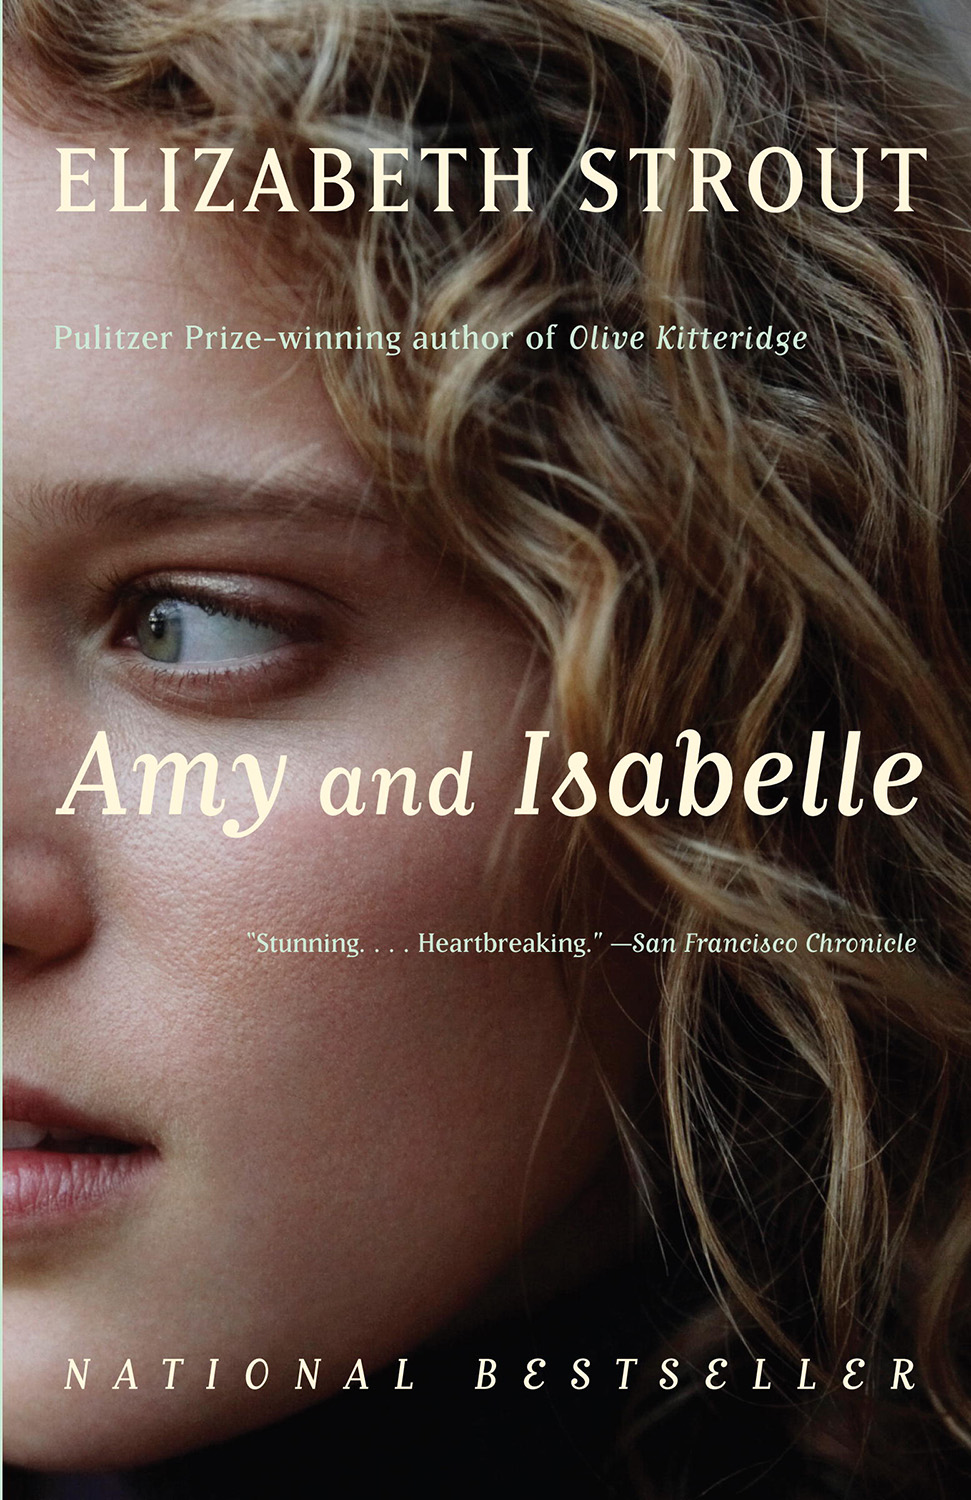 Amy and Isabelle (1998)